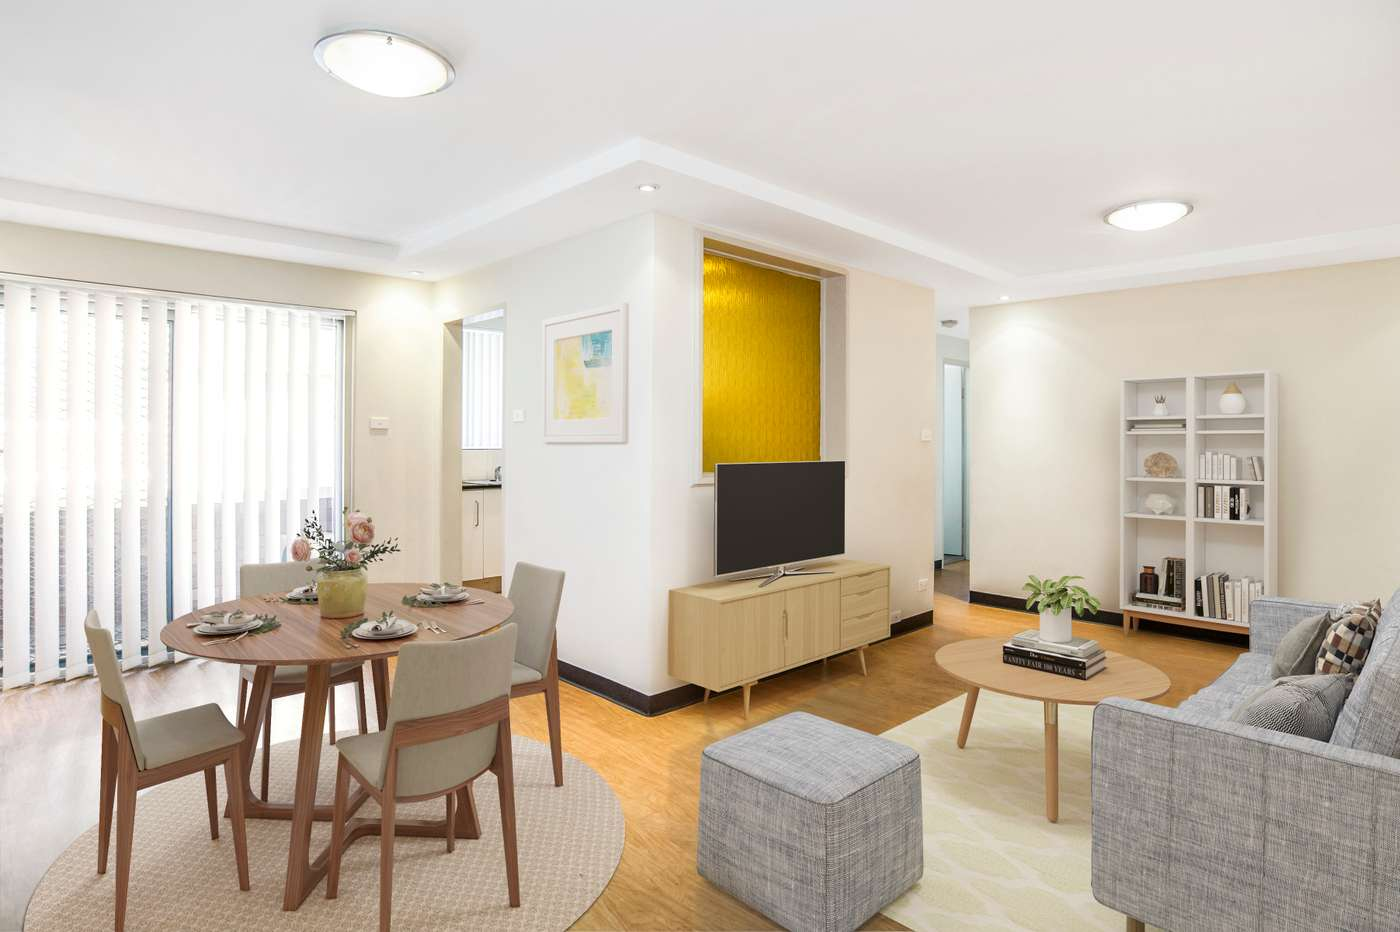 Main view of Homely apartment listing, 11/9 Secant Street, Liverpool, NSW 2170